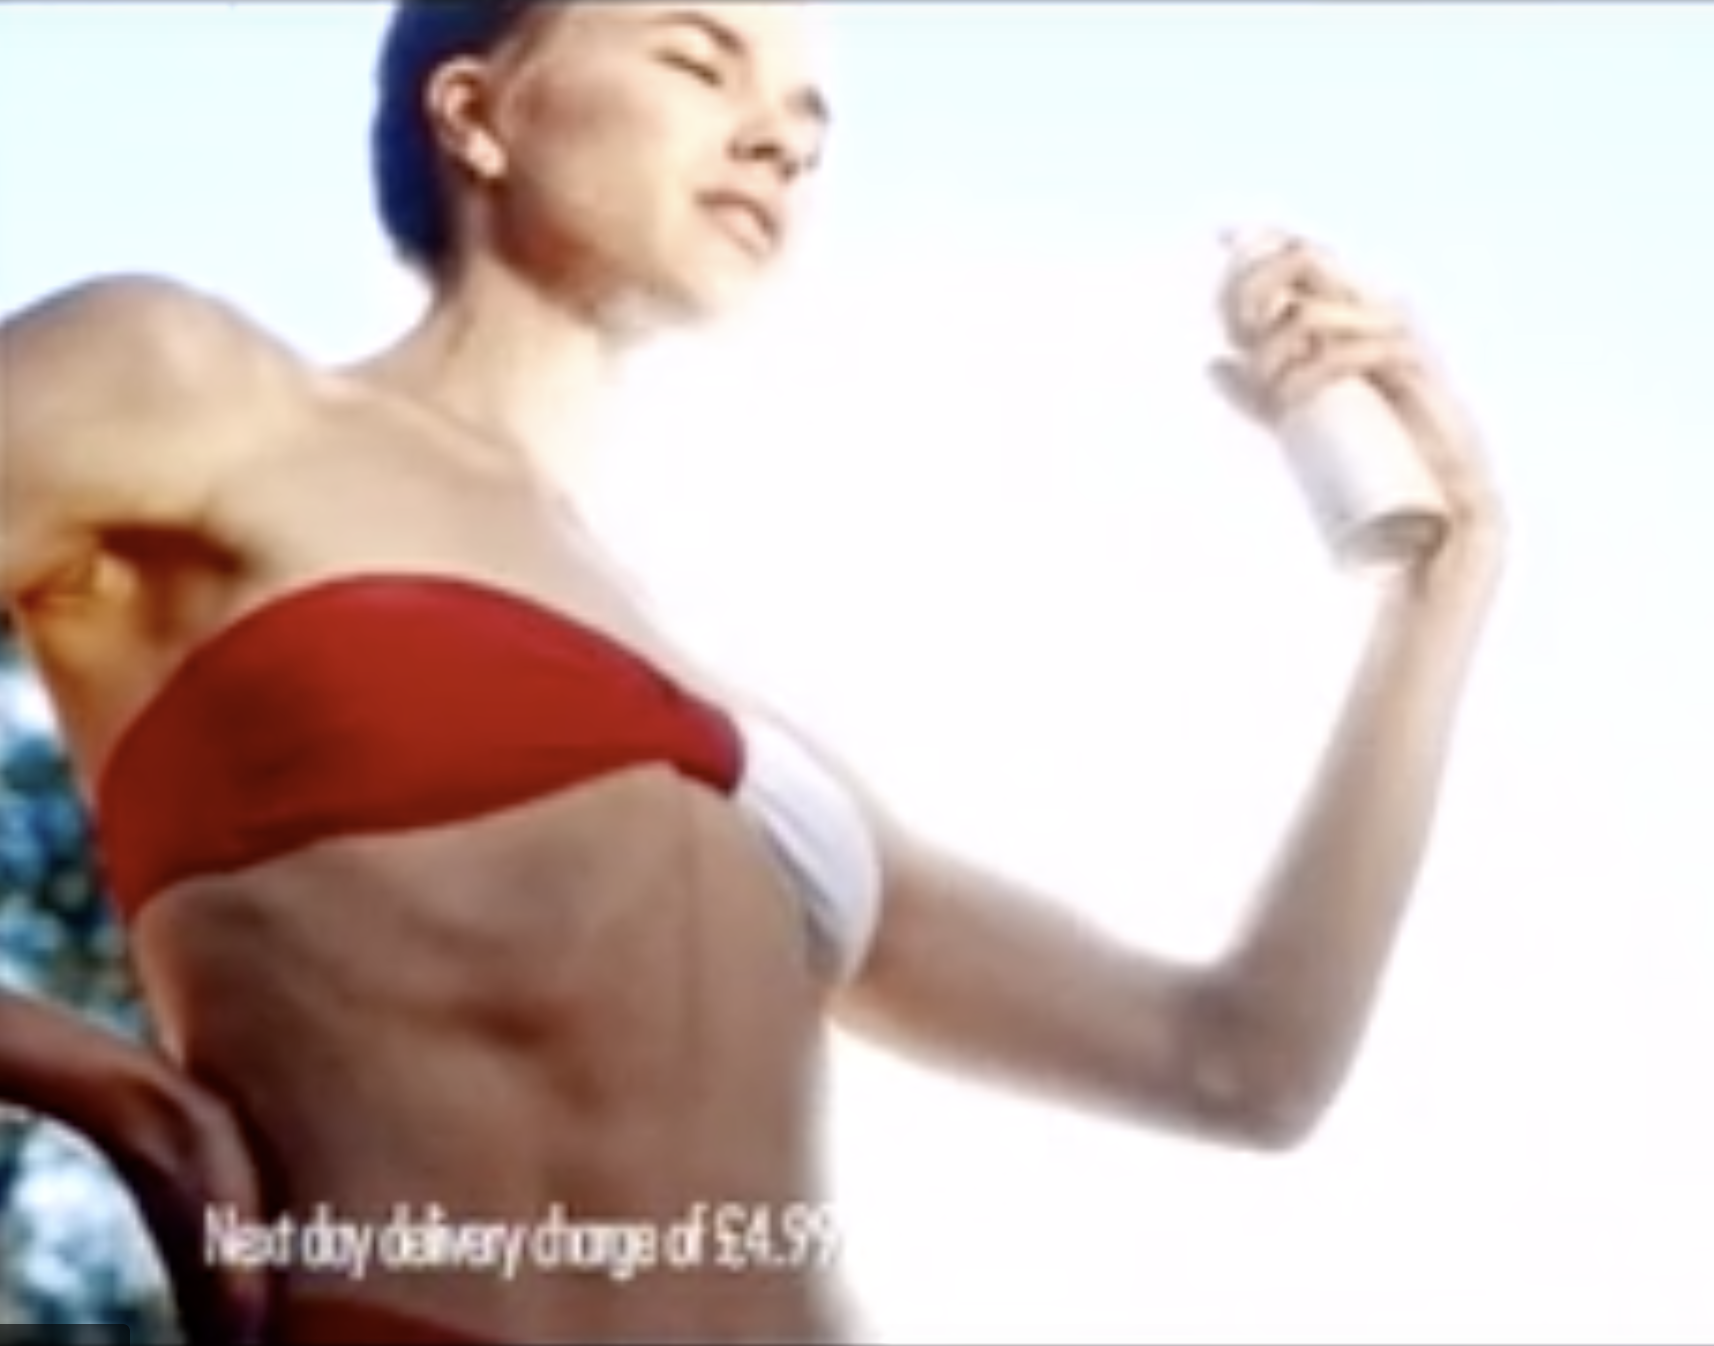 Nasty Gal ads banned in the U.K. after complaints about 'unhealthily underweight' model